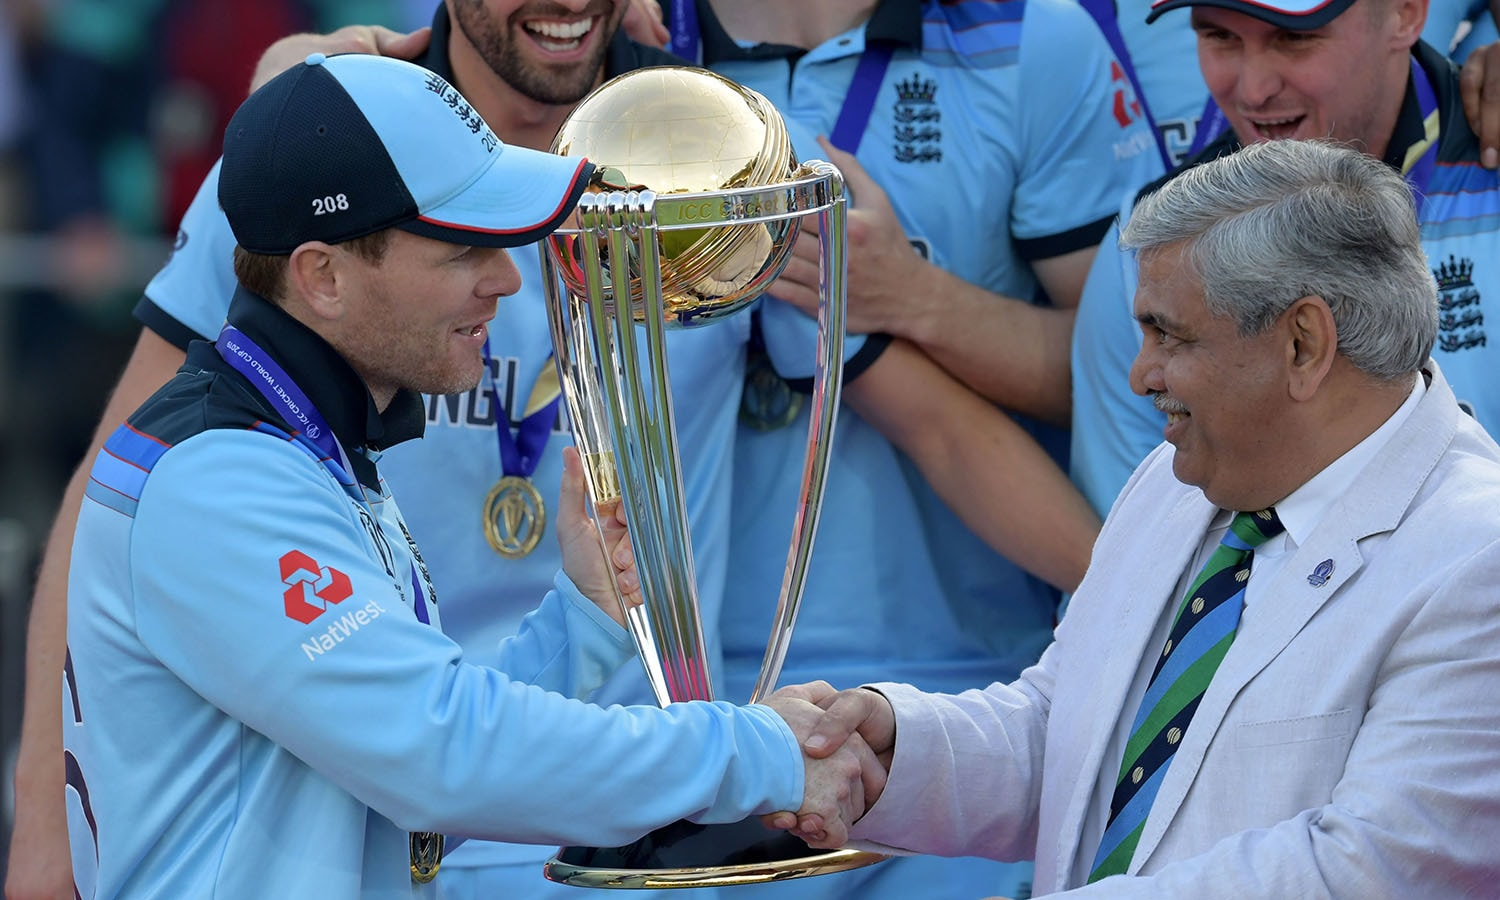 England's captain Eoin Morgan shakes hands with ICC Chairman Shashank Manohar as he lifts the World Cup trophy. — AFP